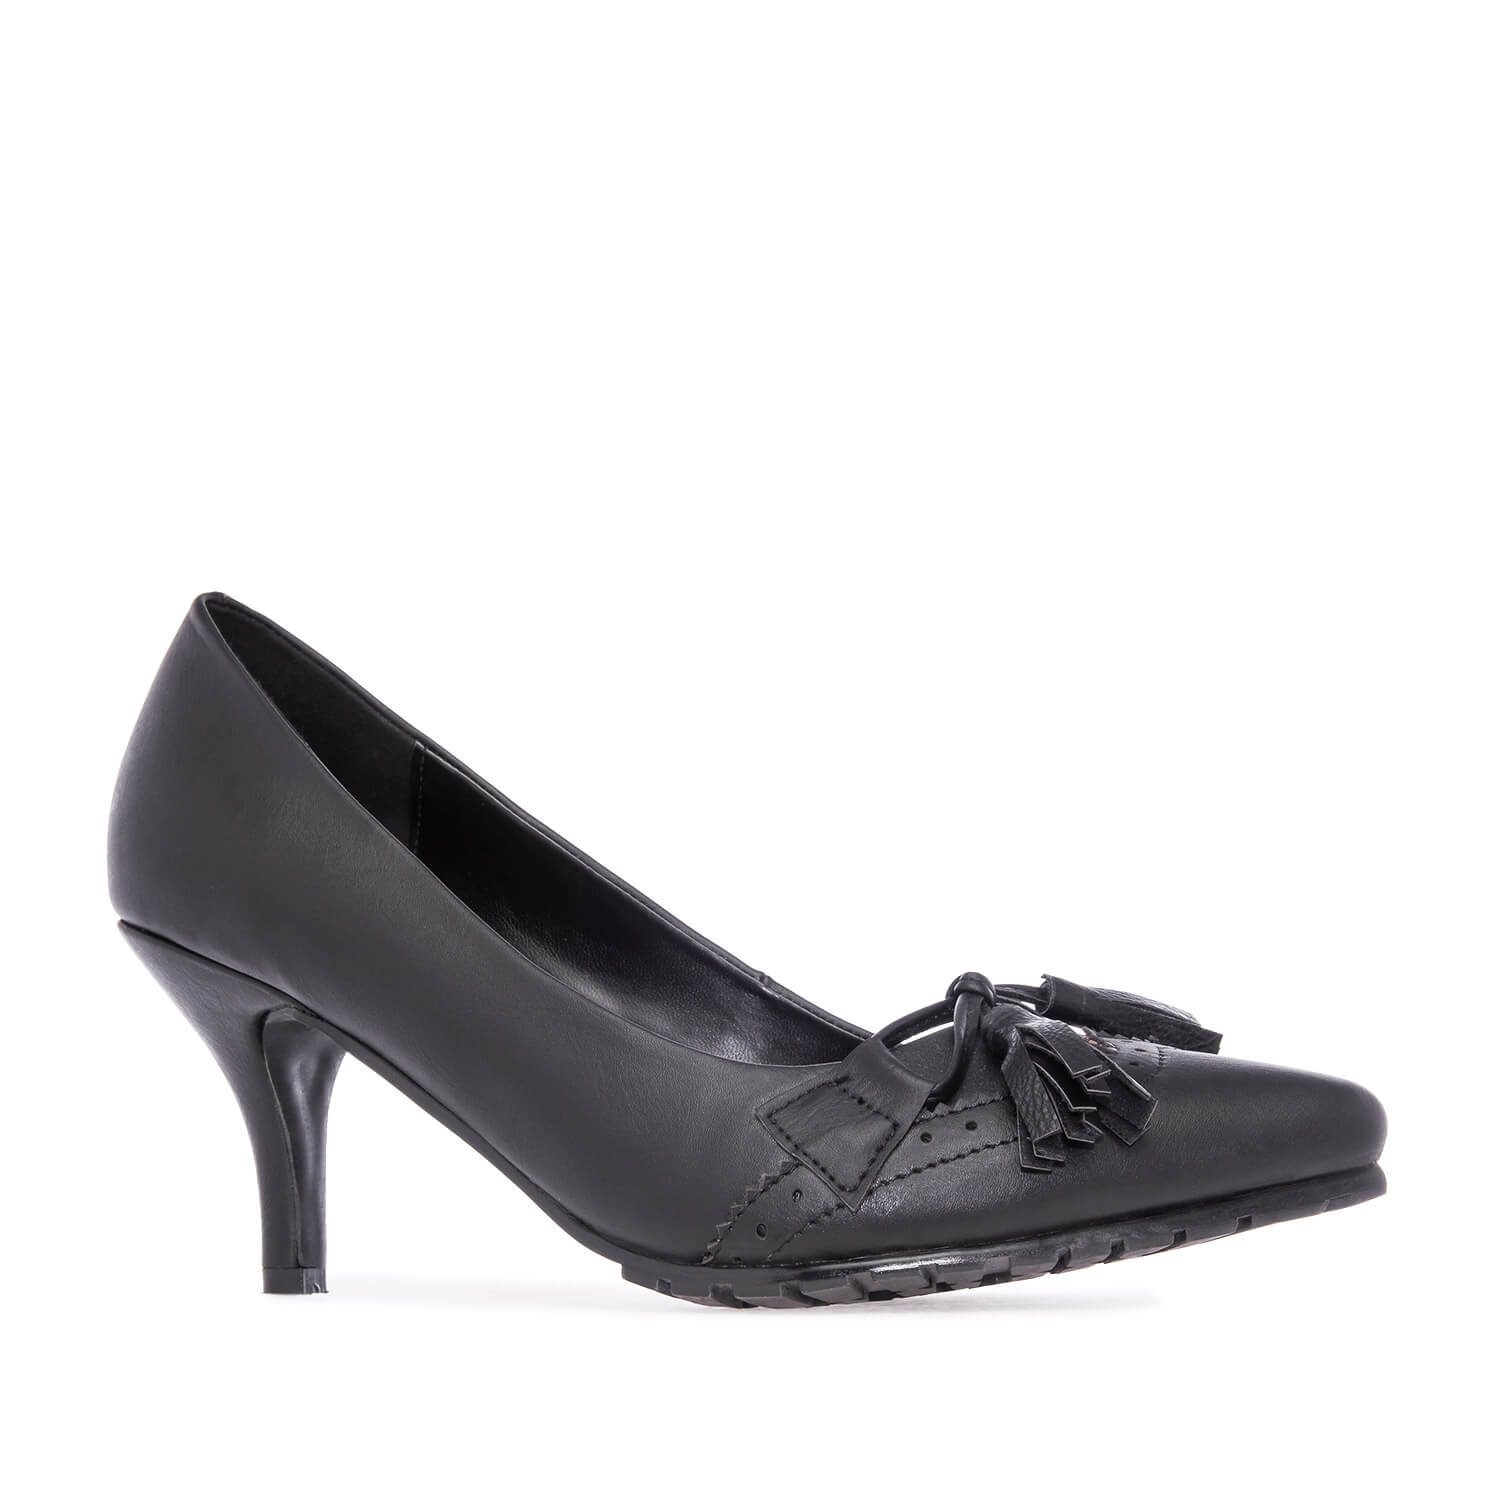 Tassle Pumps in Black faux Leather